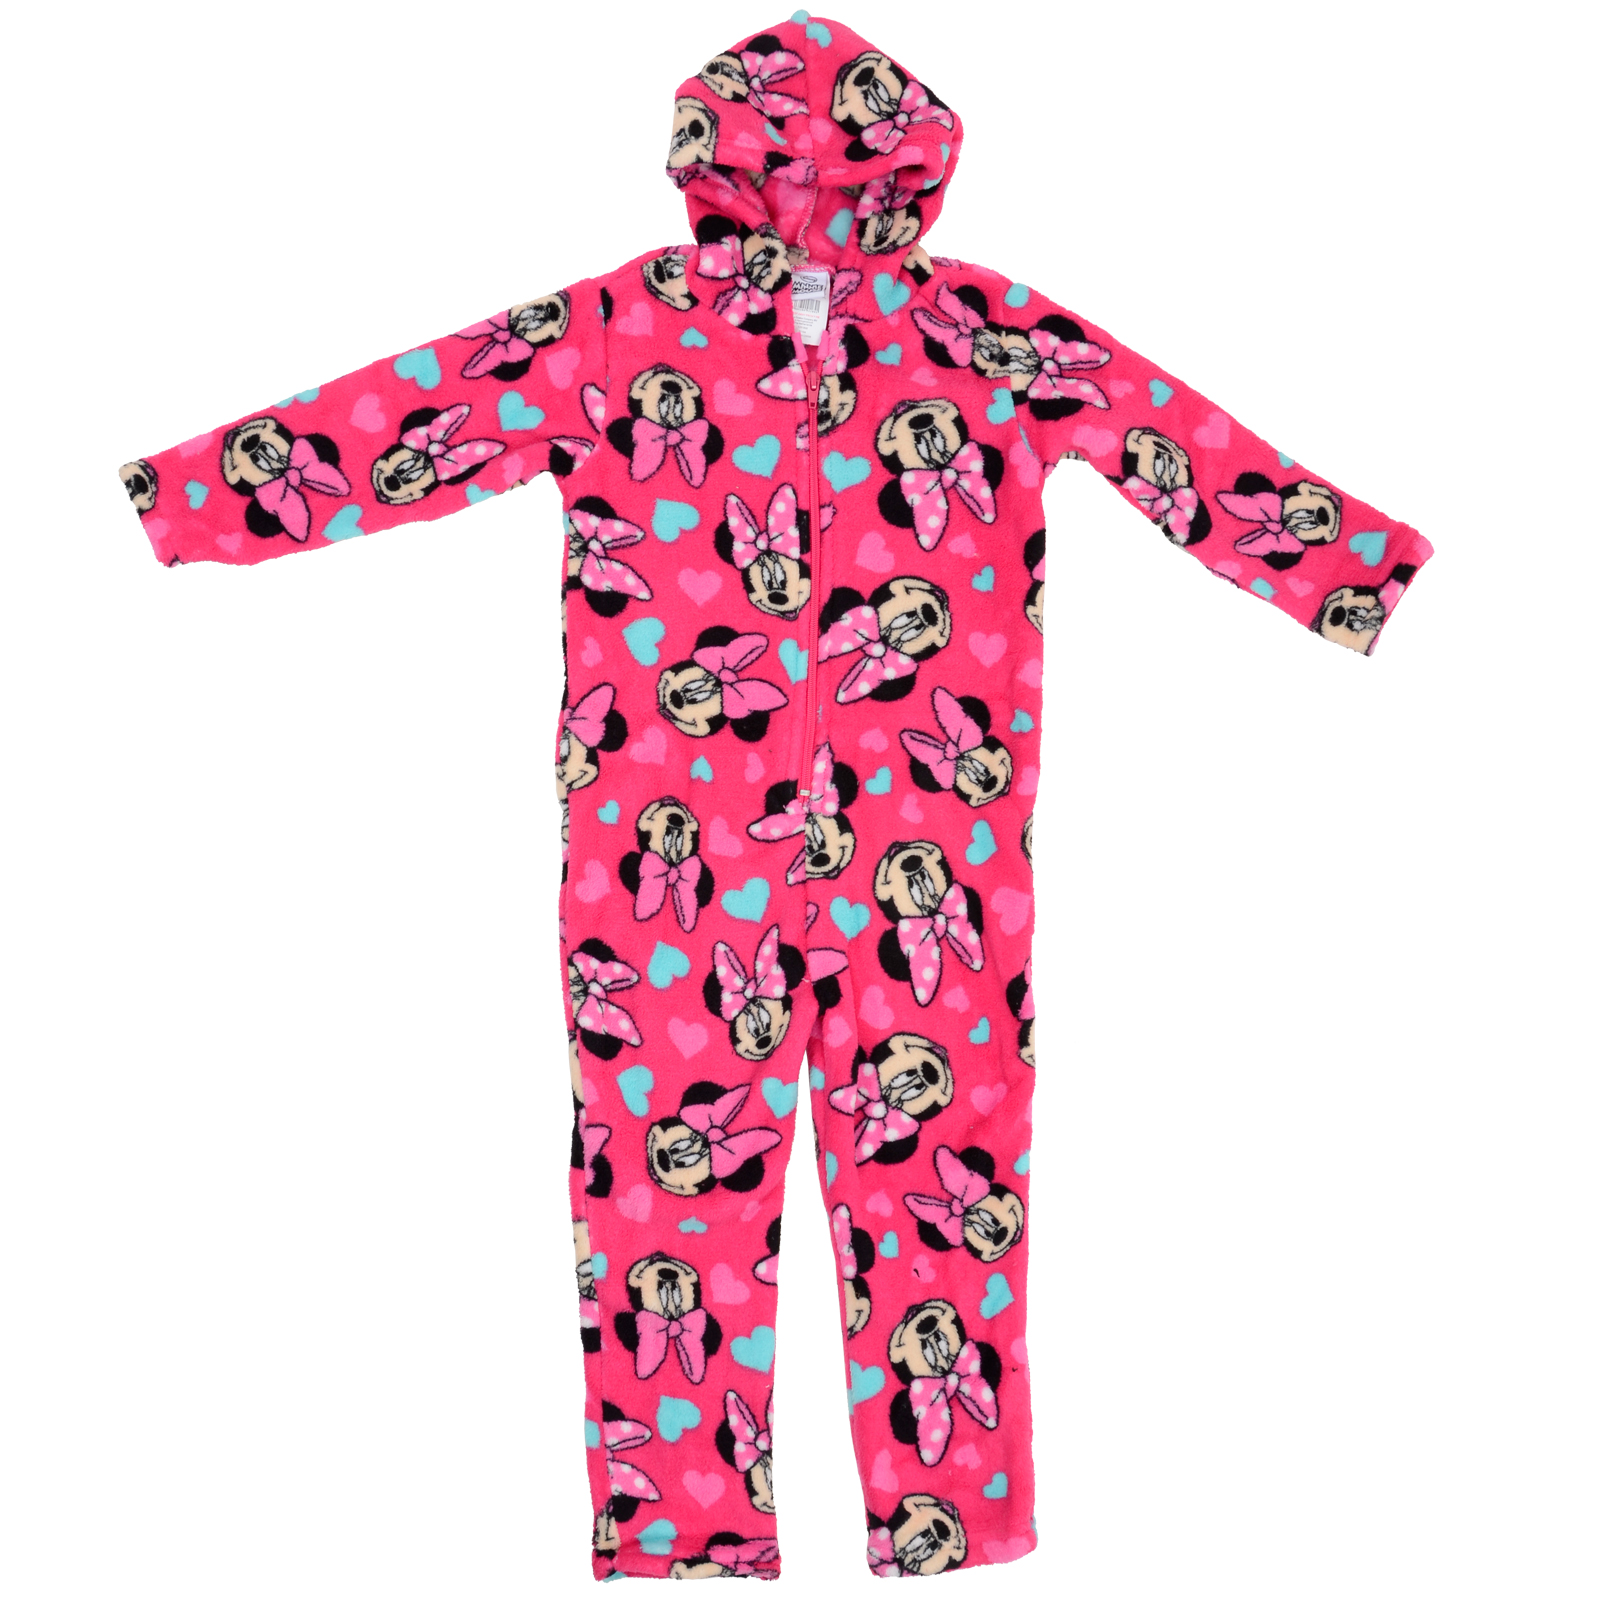 Disney's Minnie Mouse Girls Minnie Top & Fairisle Microfleece Bottoms Pajamas Set by Jammies For Your Families. sale. $ Original $ Disney's Minnie Mouse Plus Size Minnie Top & Fairisle Microfleece Bottoms Pajamas Set by Jammies For Your Families. sale. $ Original $